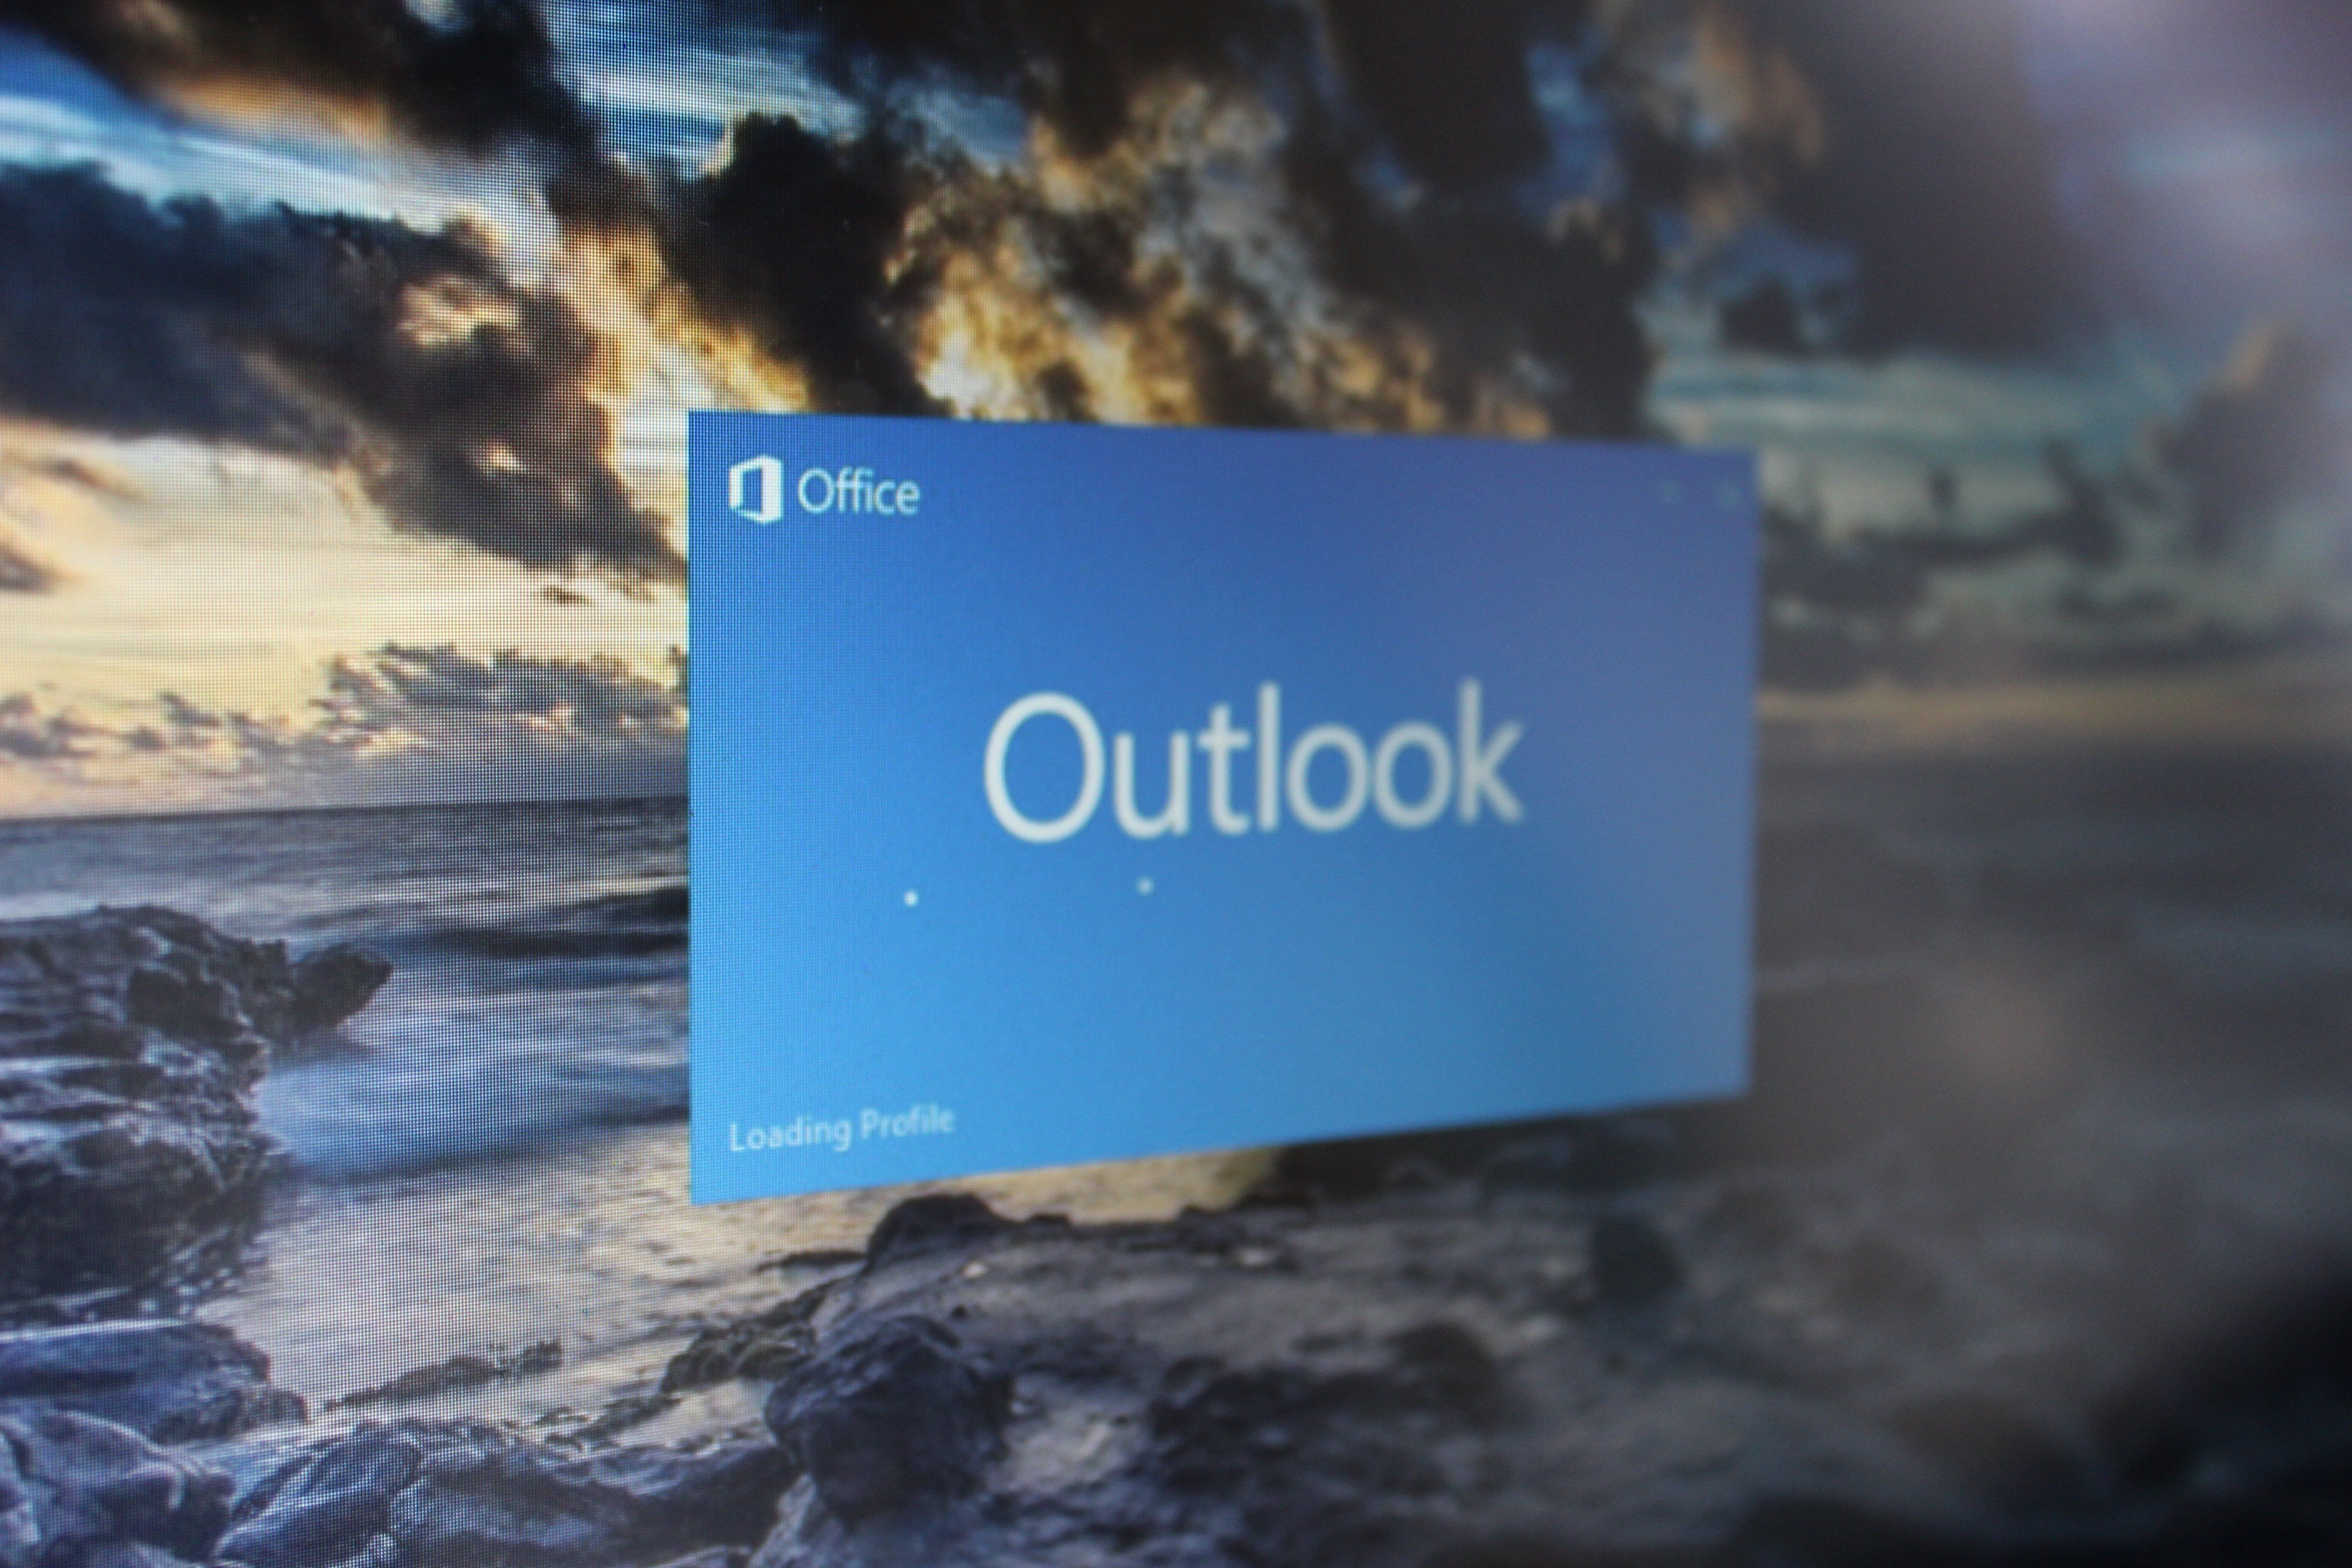 Popout functionality for OutlookMail app on Windows 10